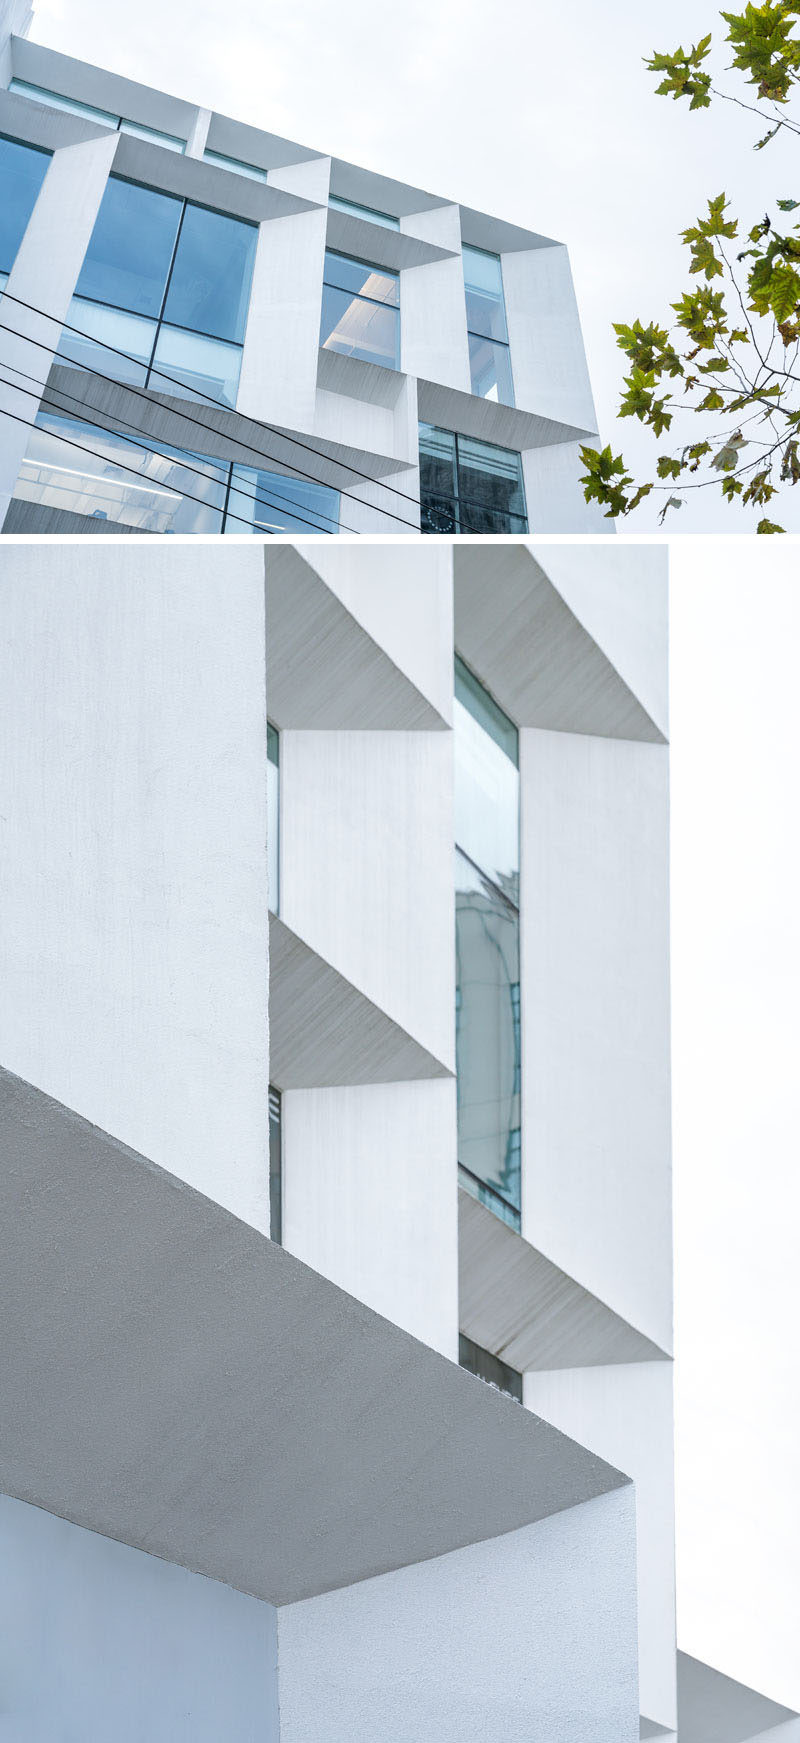 The simple white exterior of this modern office building features angled frames, and is like a beacon of light for the surrounding neighborhood. #ModernOfficeBuilding #Architecture